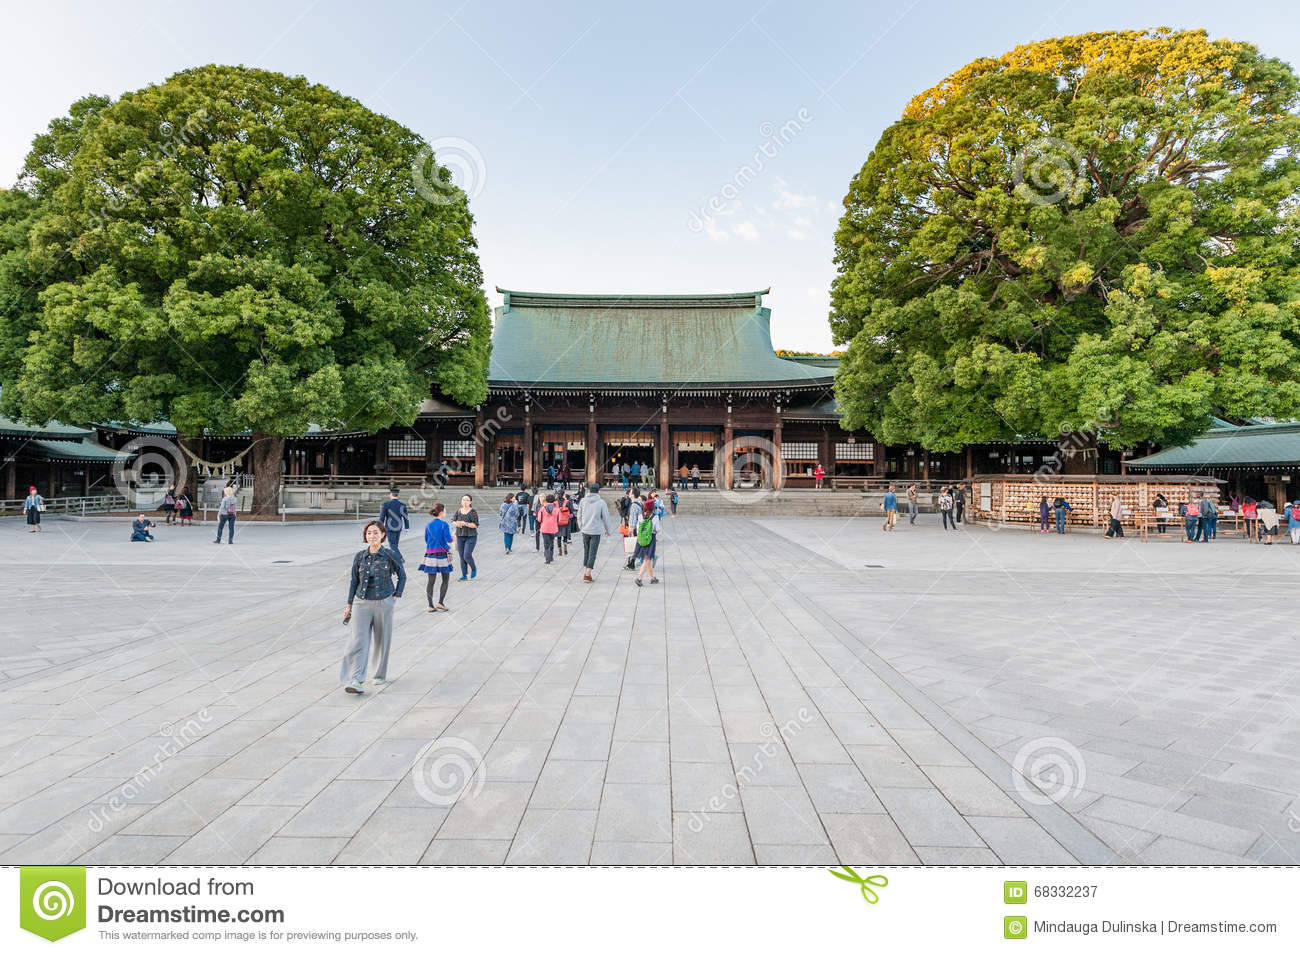 TOKYO, JAPAN - OCTOBER 07, 2015: Entrance to Imperial Meiji Shrine located in Shibuya, Tokyo shrine that is dedicated to the deifi